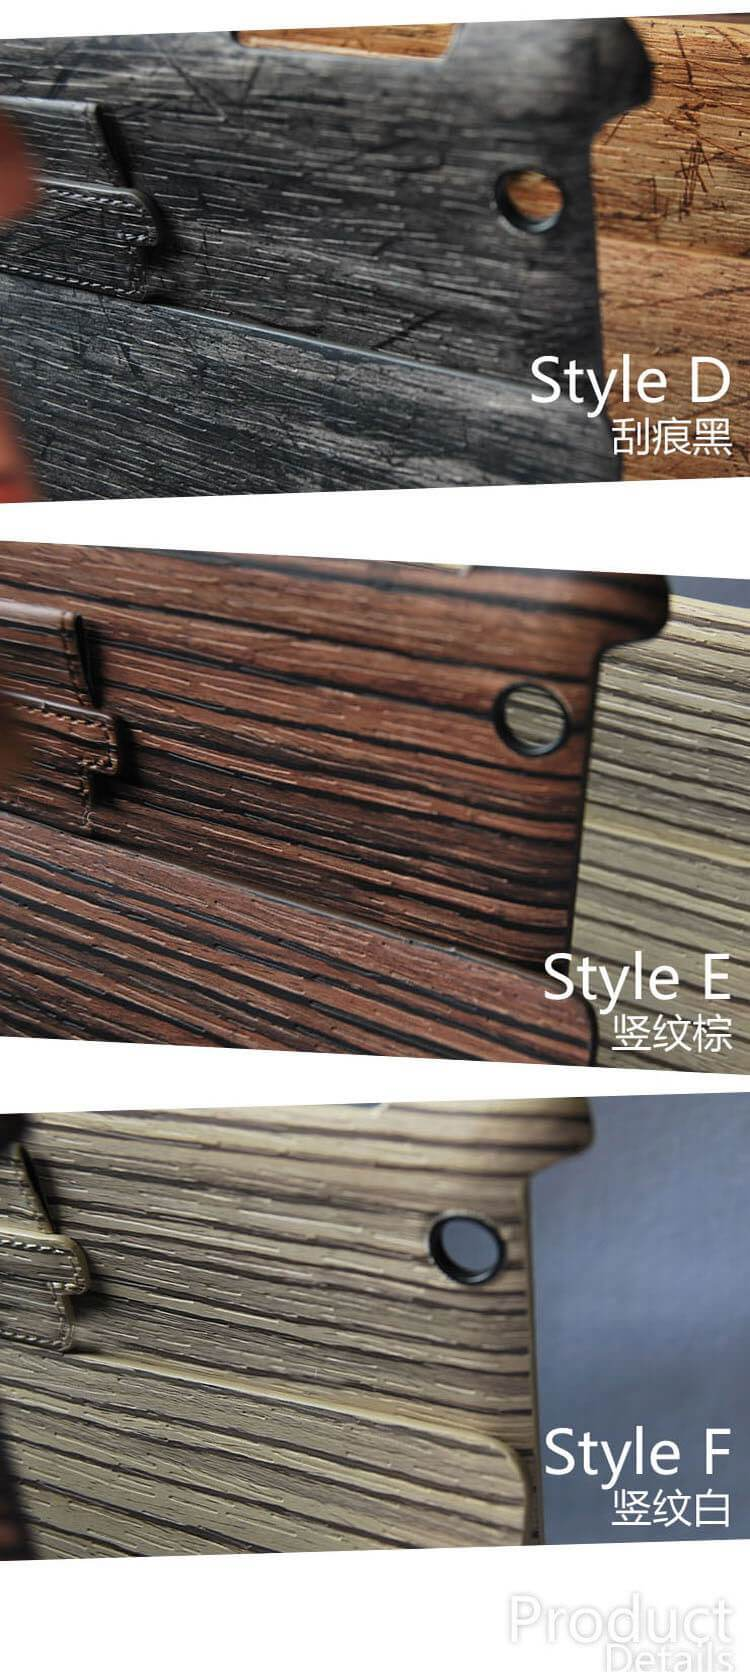 Case with wooden pattern for Apple iPad Mini 1, iPad Mini 2, iPad Mini 3, Apple iPad 2, iPad 3, iPad 4, Apple iPad Air 1, iPad Air 2